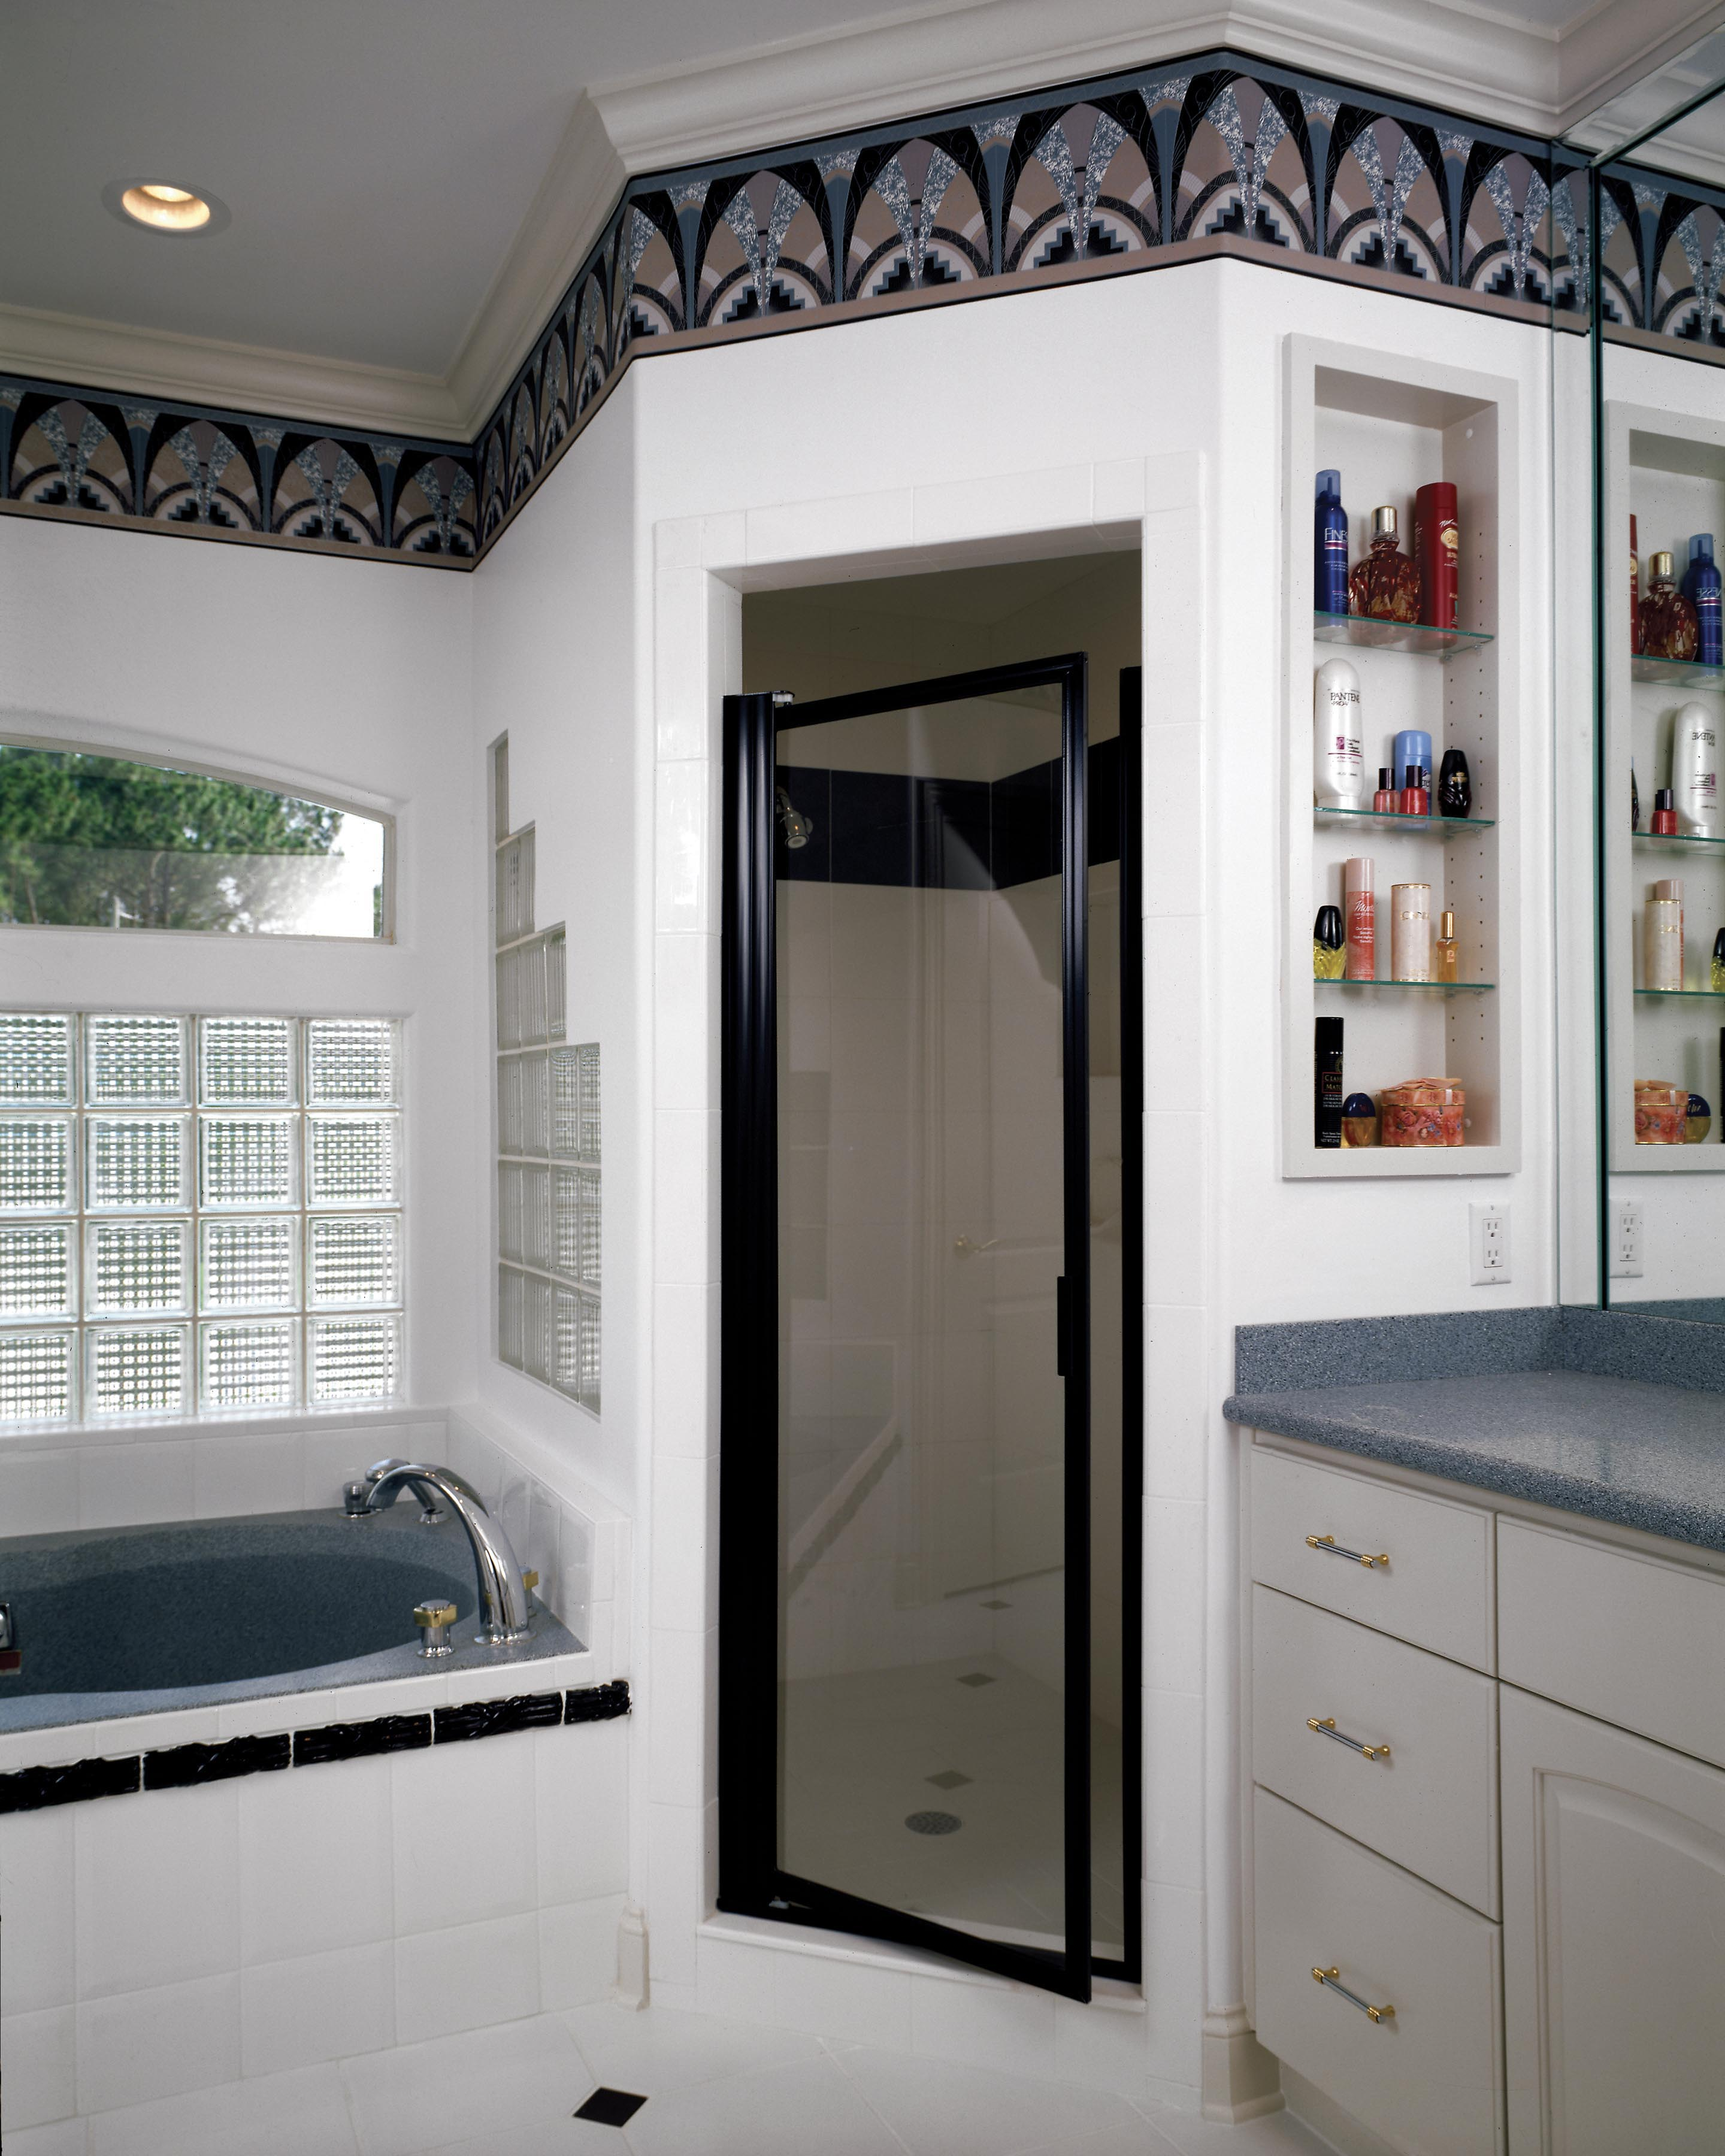 3600 #5C4E43 Shower Doors And Enclosures Advantage Auto Glass pic Glass Entry Doors Residential 39612880